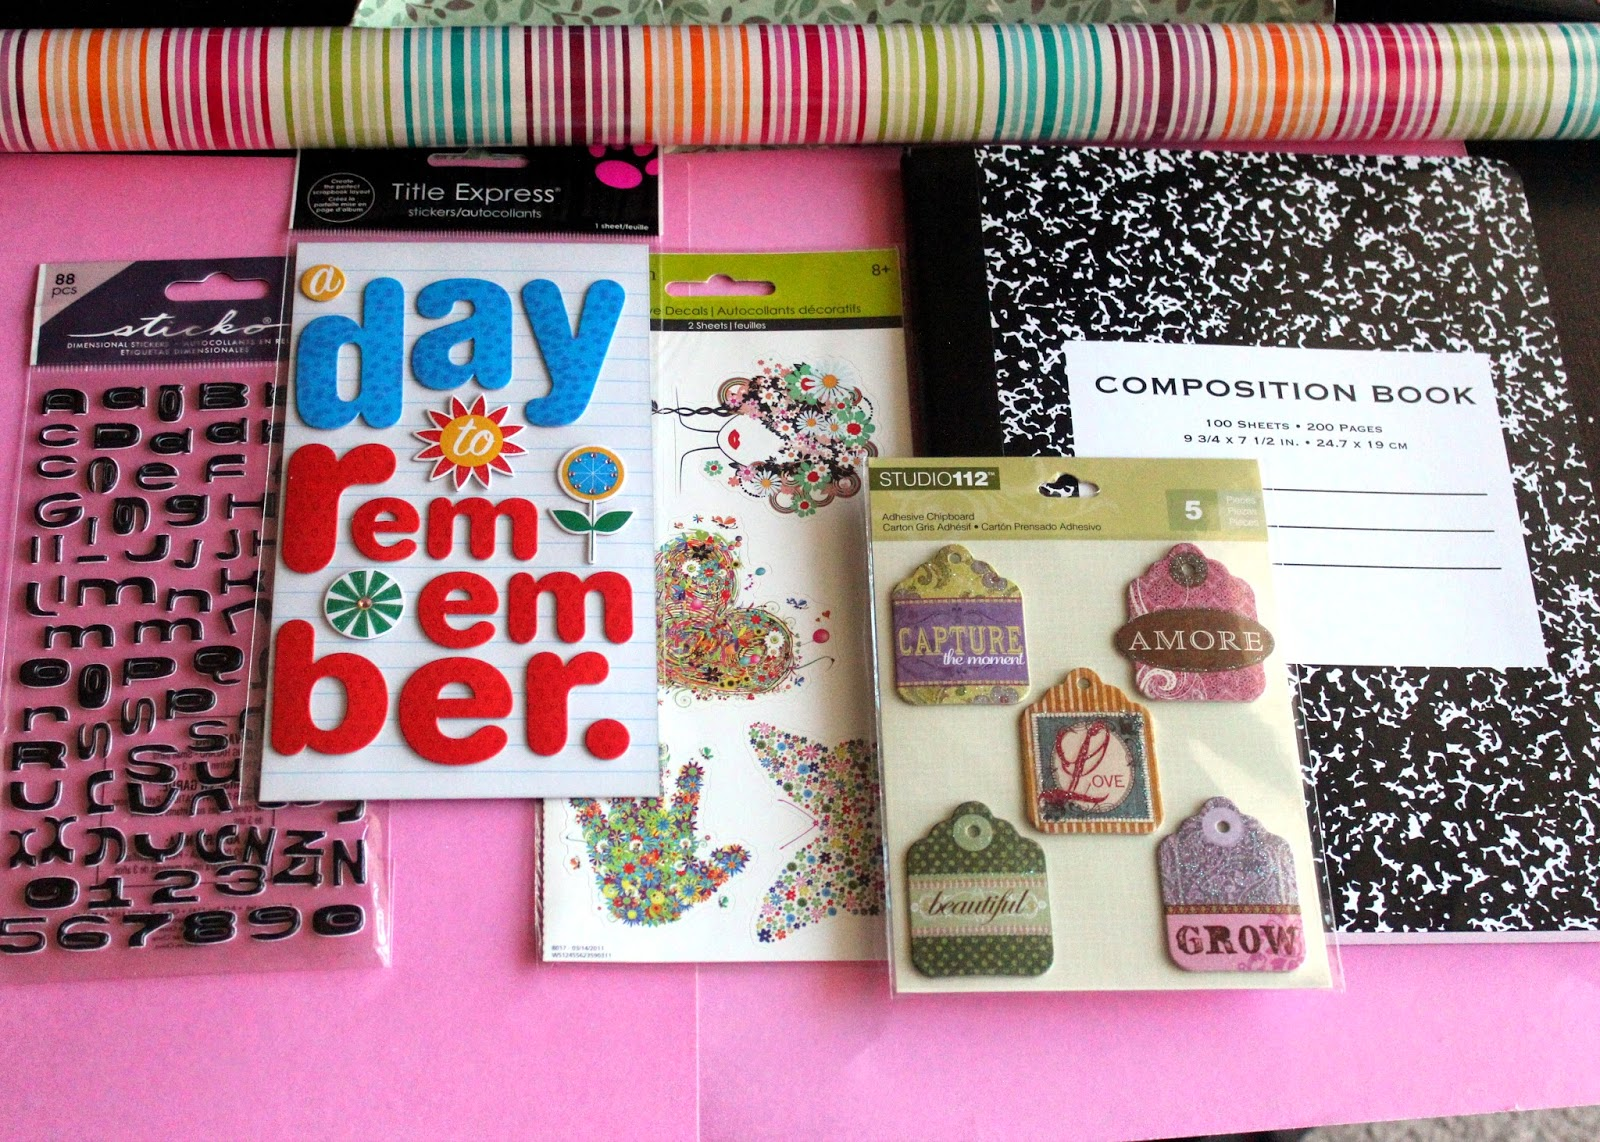 How to make scrapbook journal - How To Make A Gratitude Journal With Scrapbook Paper And Stickers